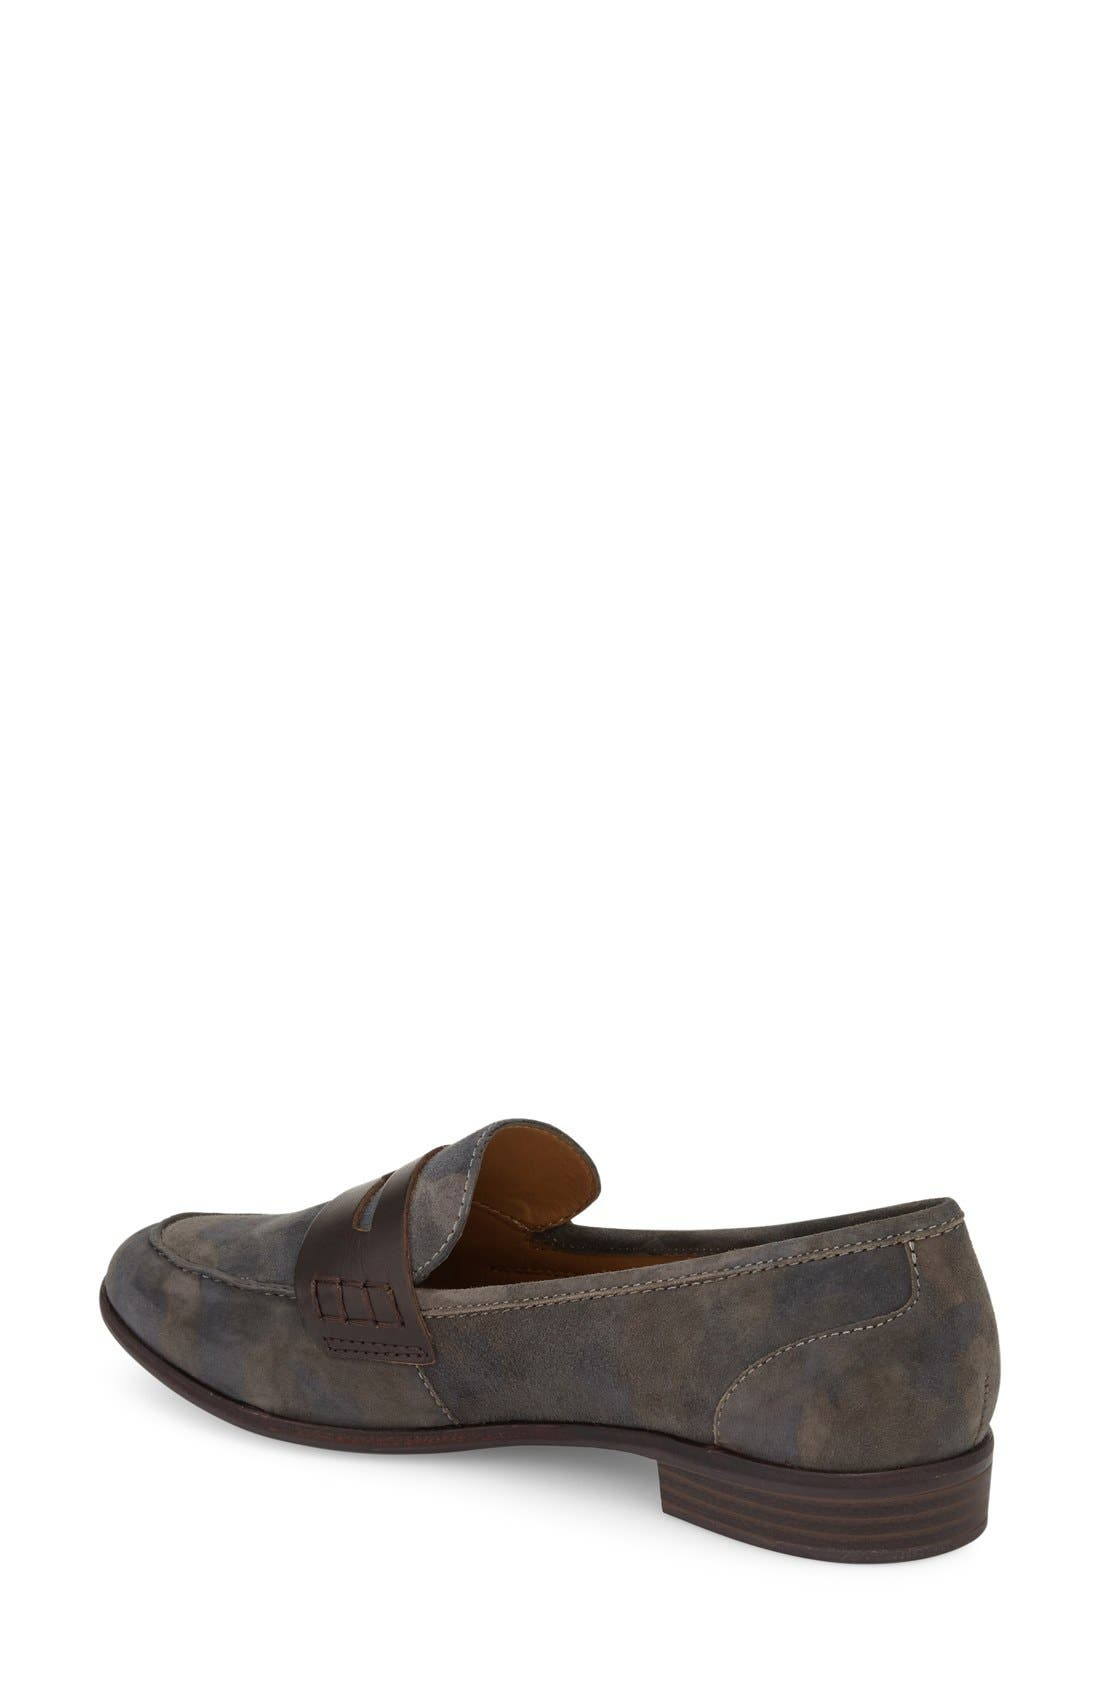 Emilia Penny Loafer,                             Alternate thumbnail 2, color,                             Camo/ Espresso Suede